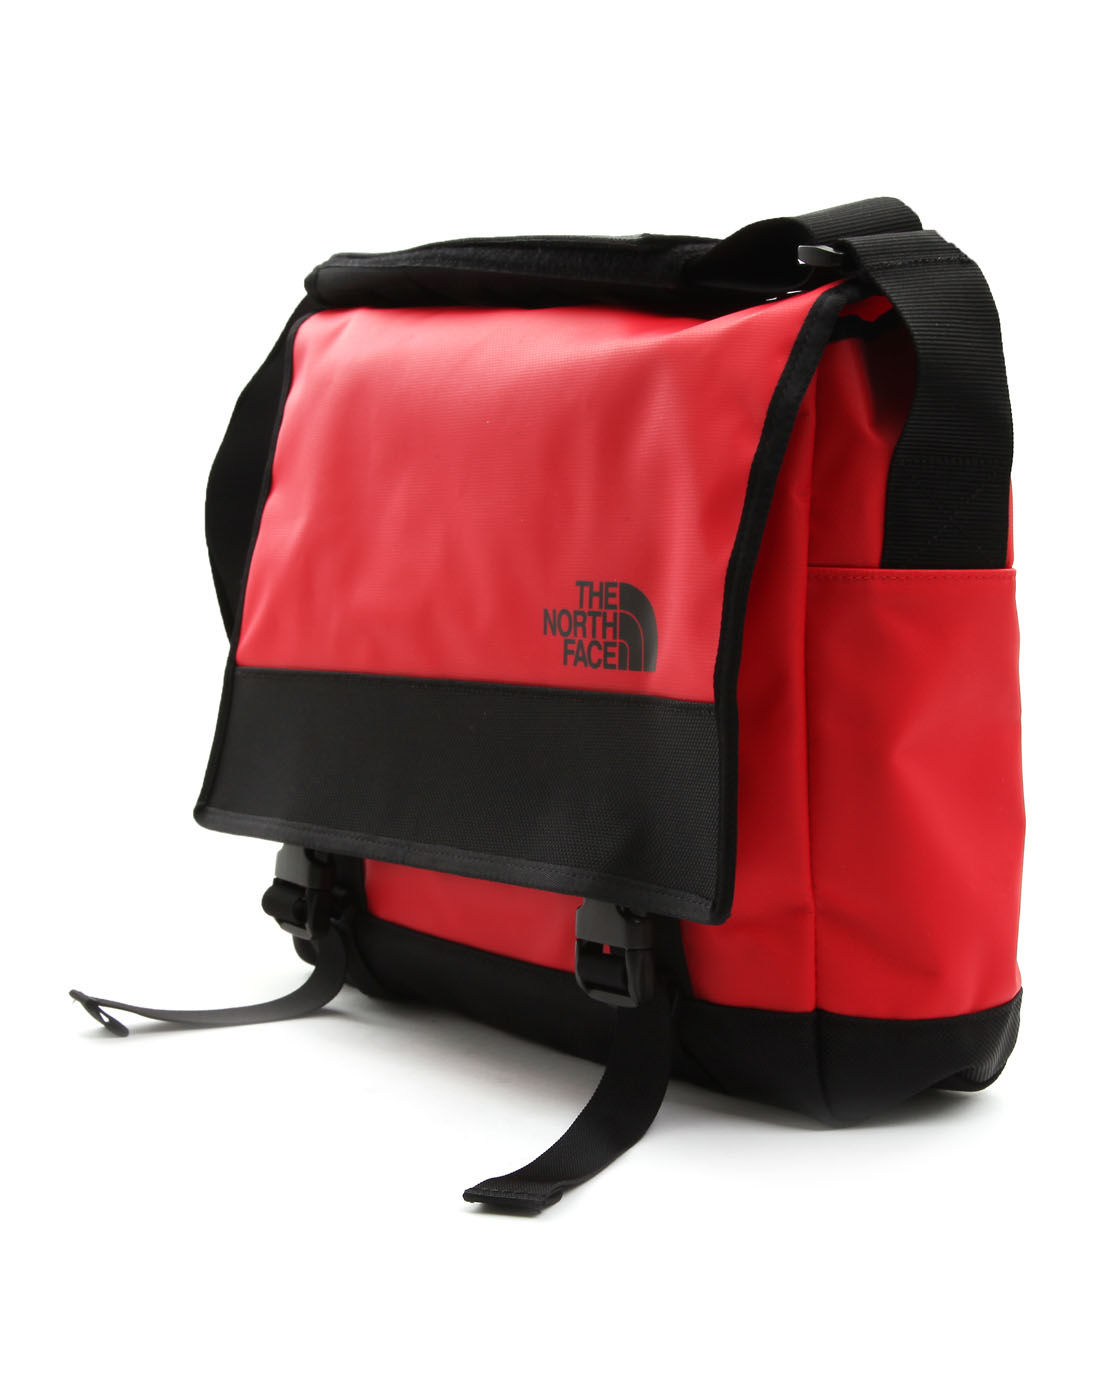 the north face small red messenger bag in red for men. Black Bedroom Furniture Sets. Home Design Ideas